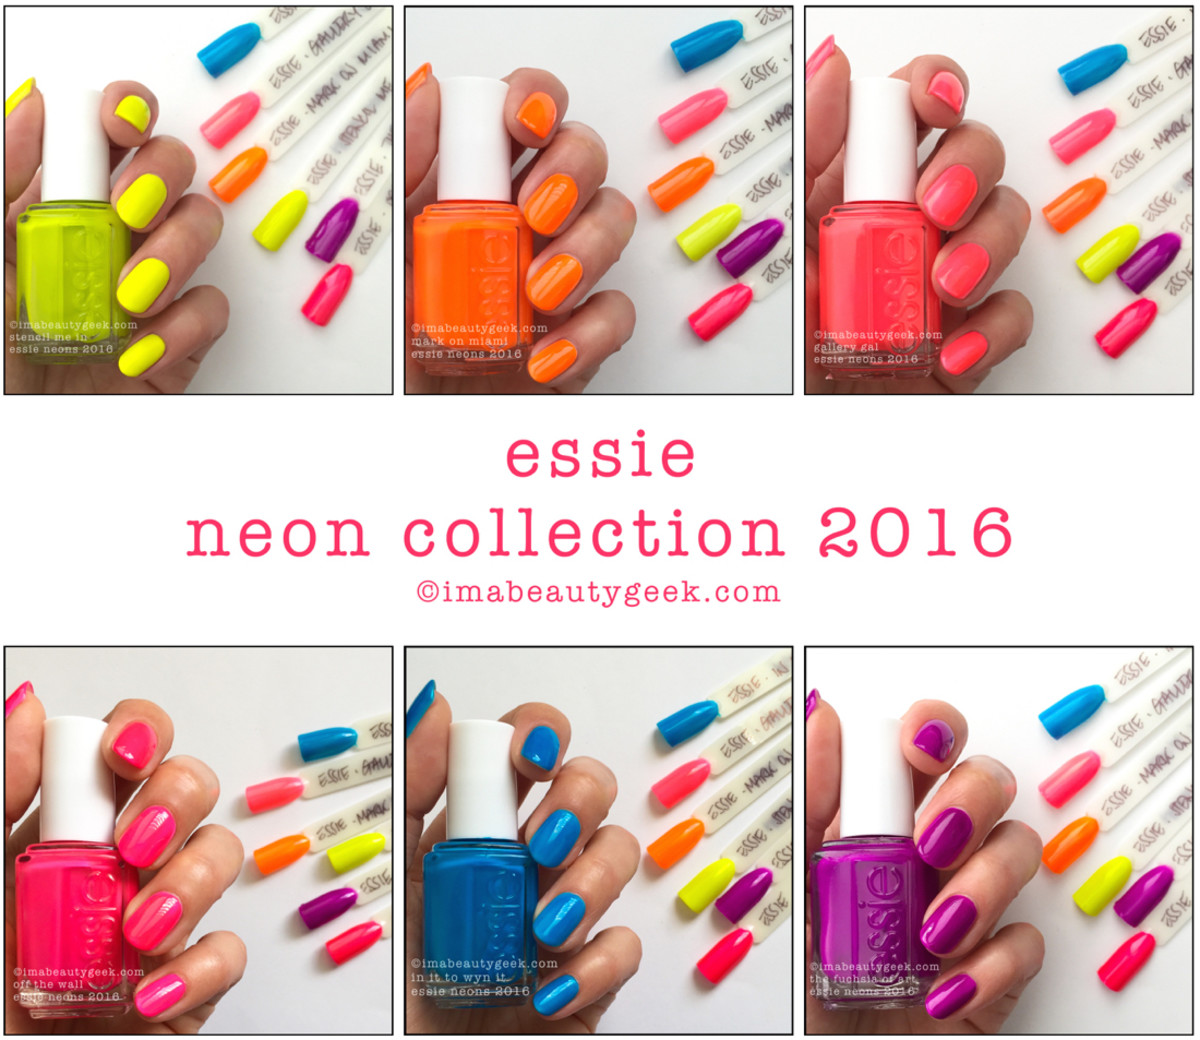 Essie Neon Collection 2016 Swatches Review - Version 3